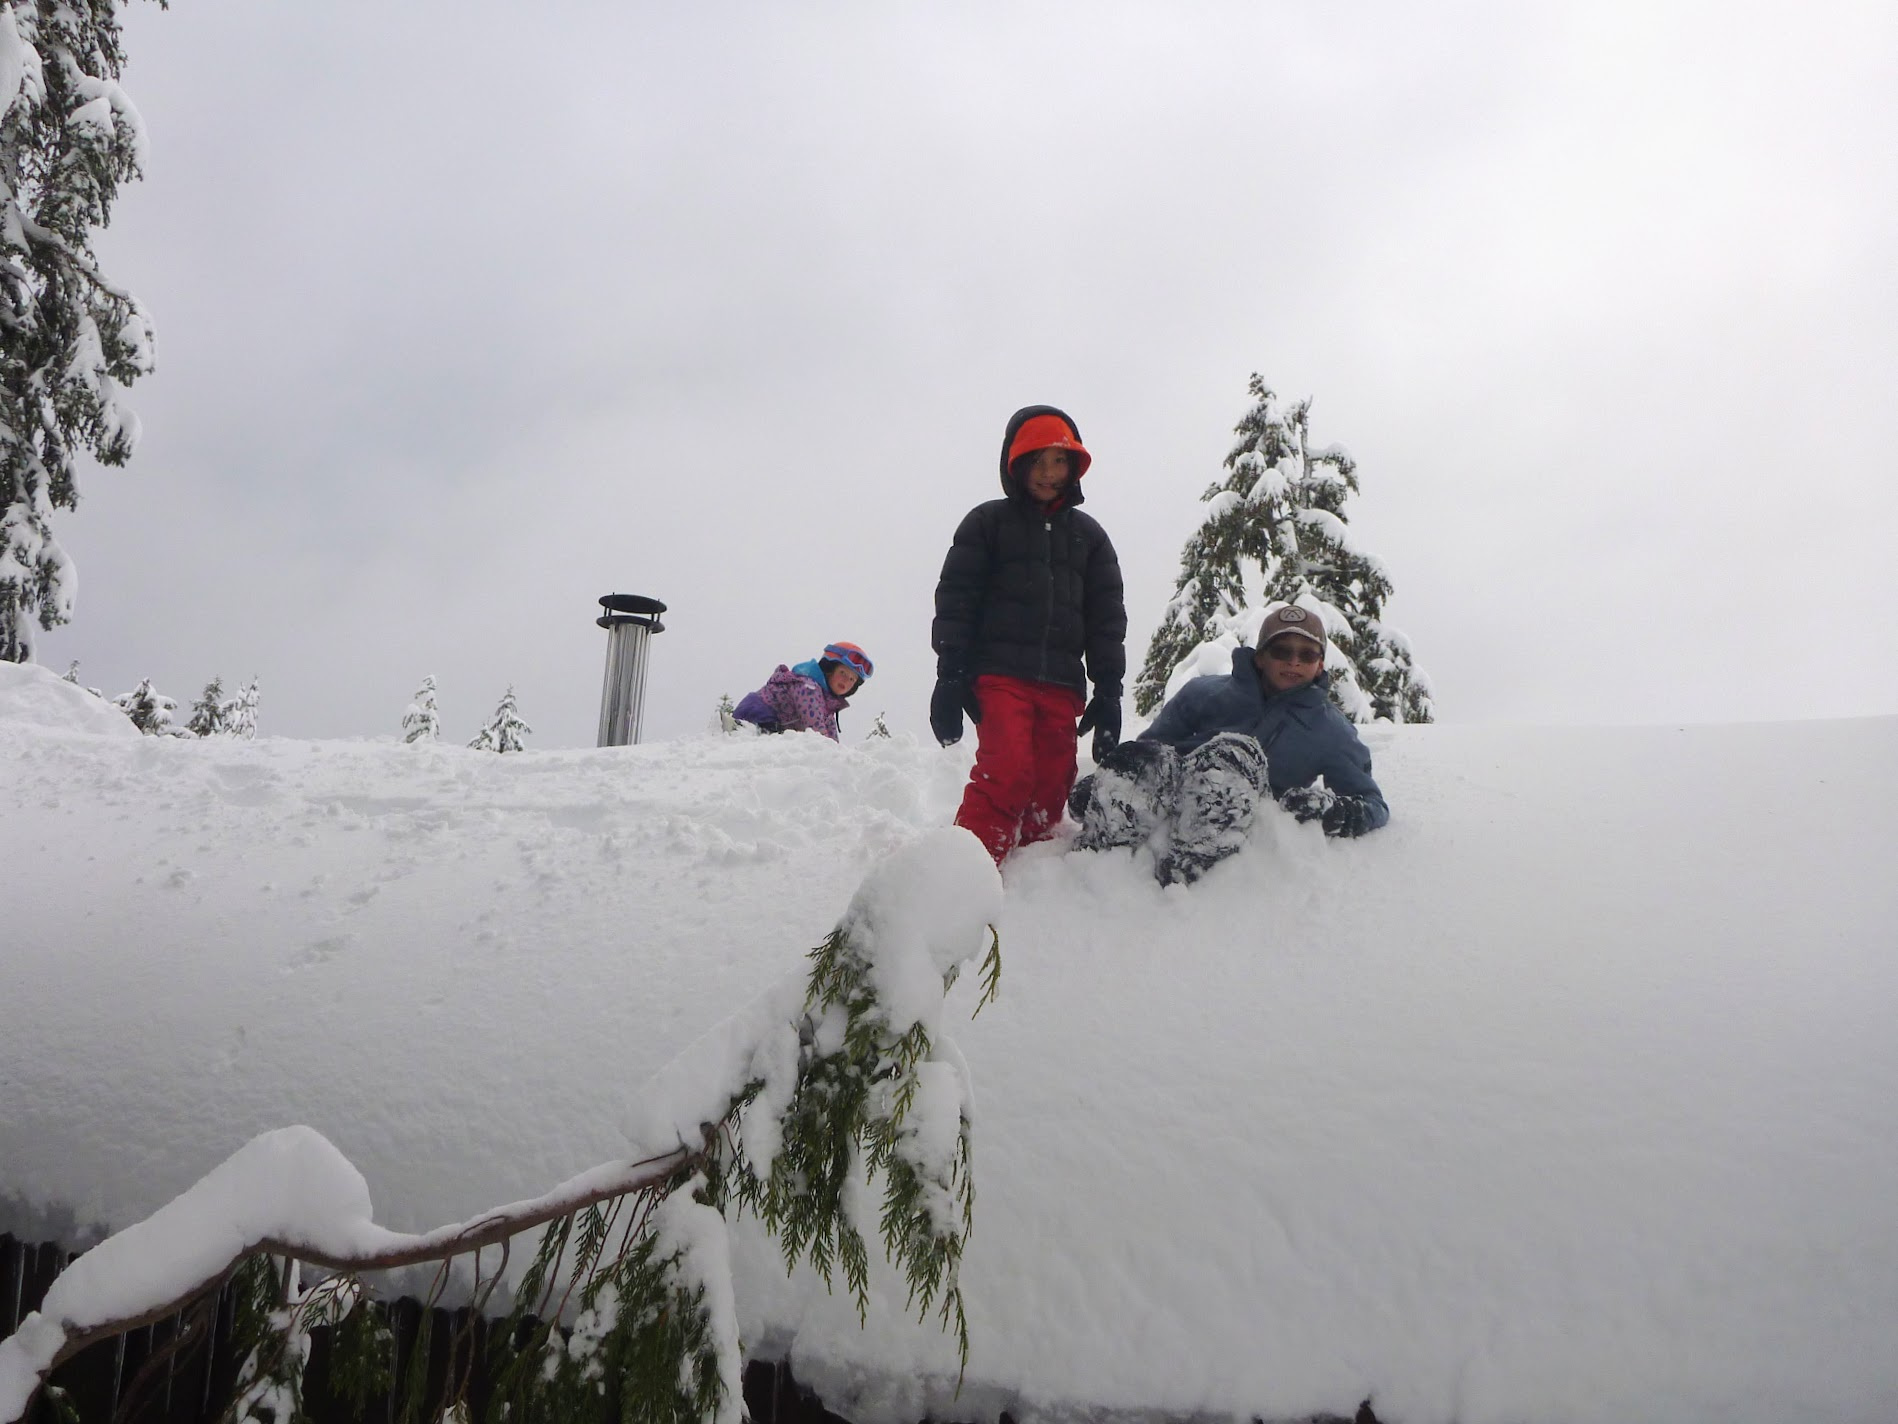 The moment before the cornice fall.